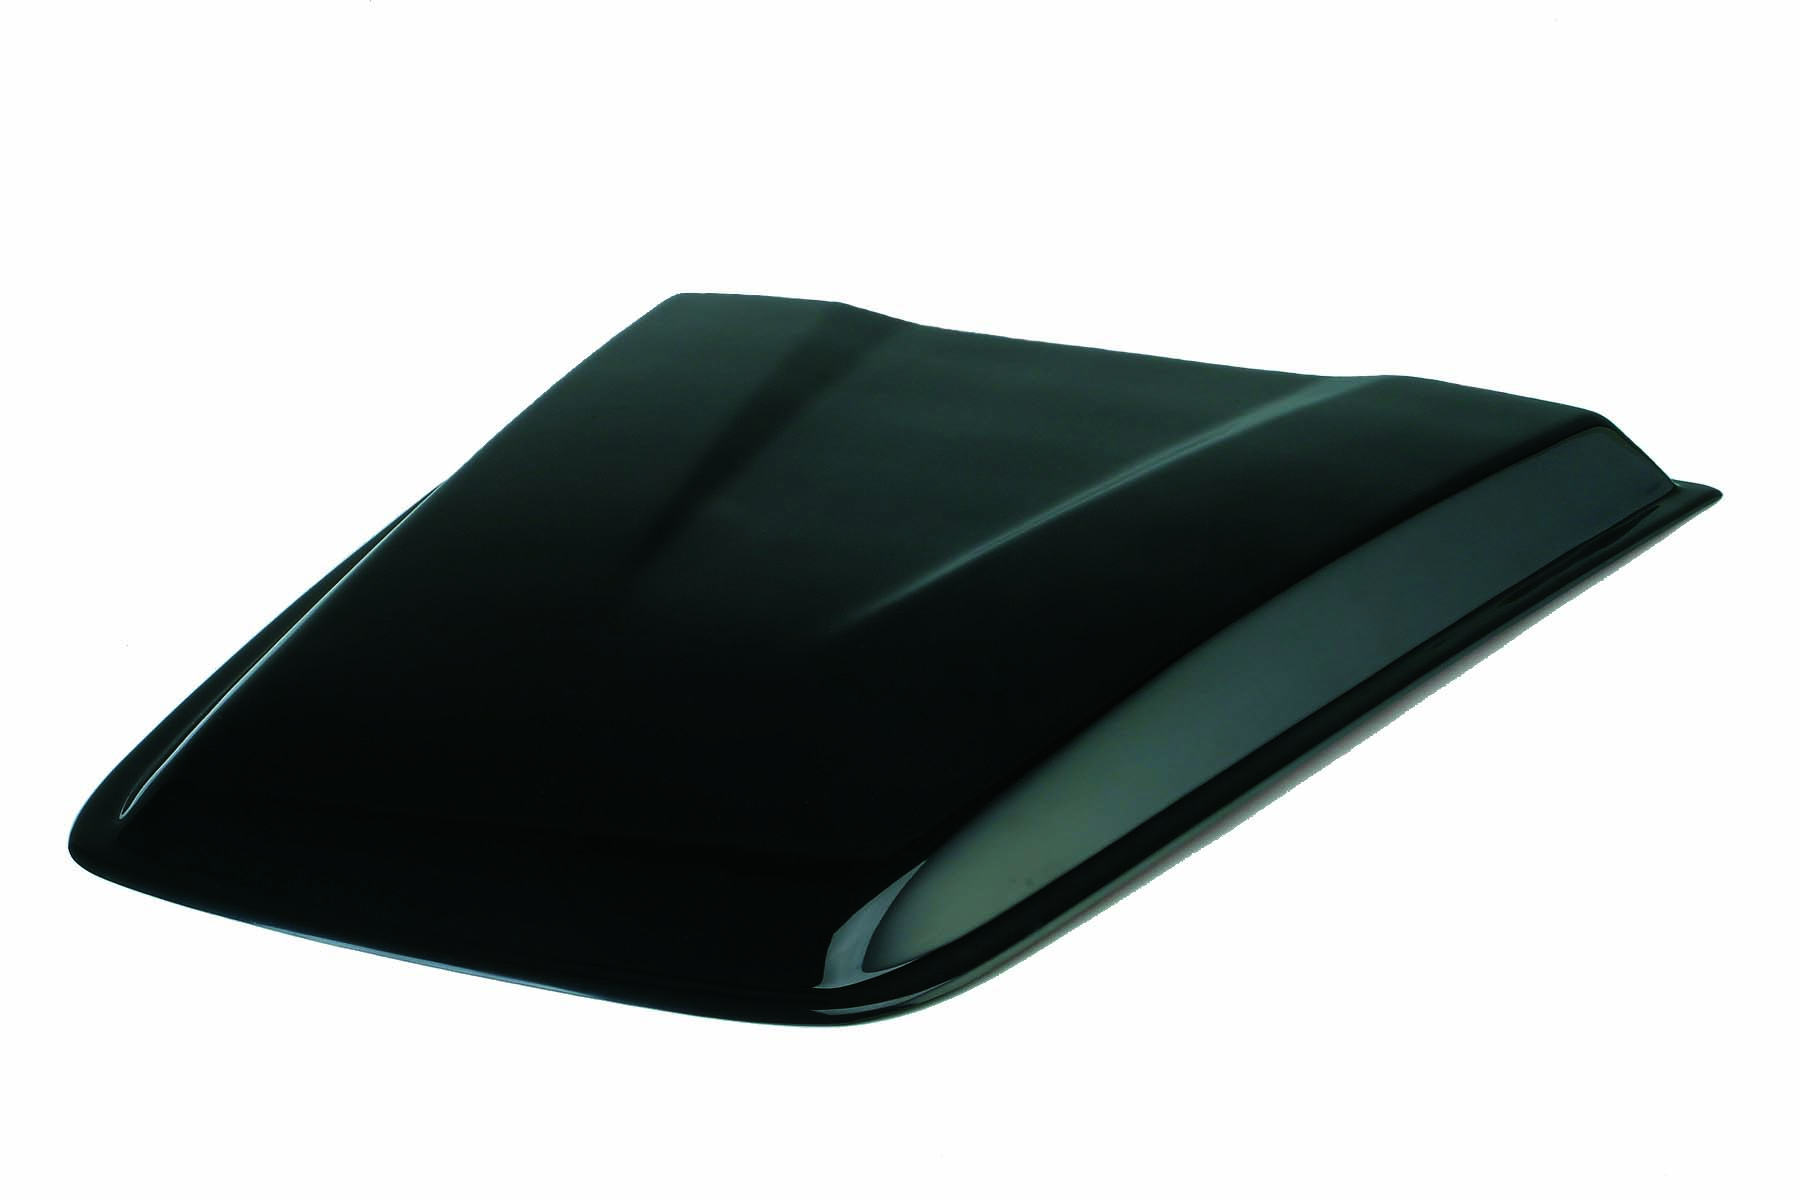 Gmc Envoy 2002-2009 Xl Truck Cowl Induction Hood Scoop